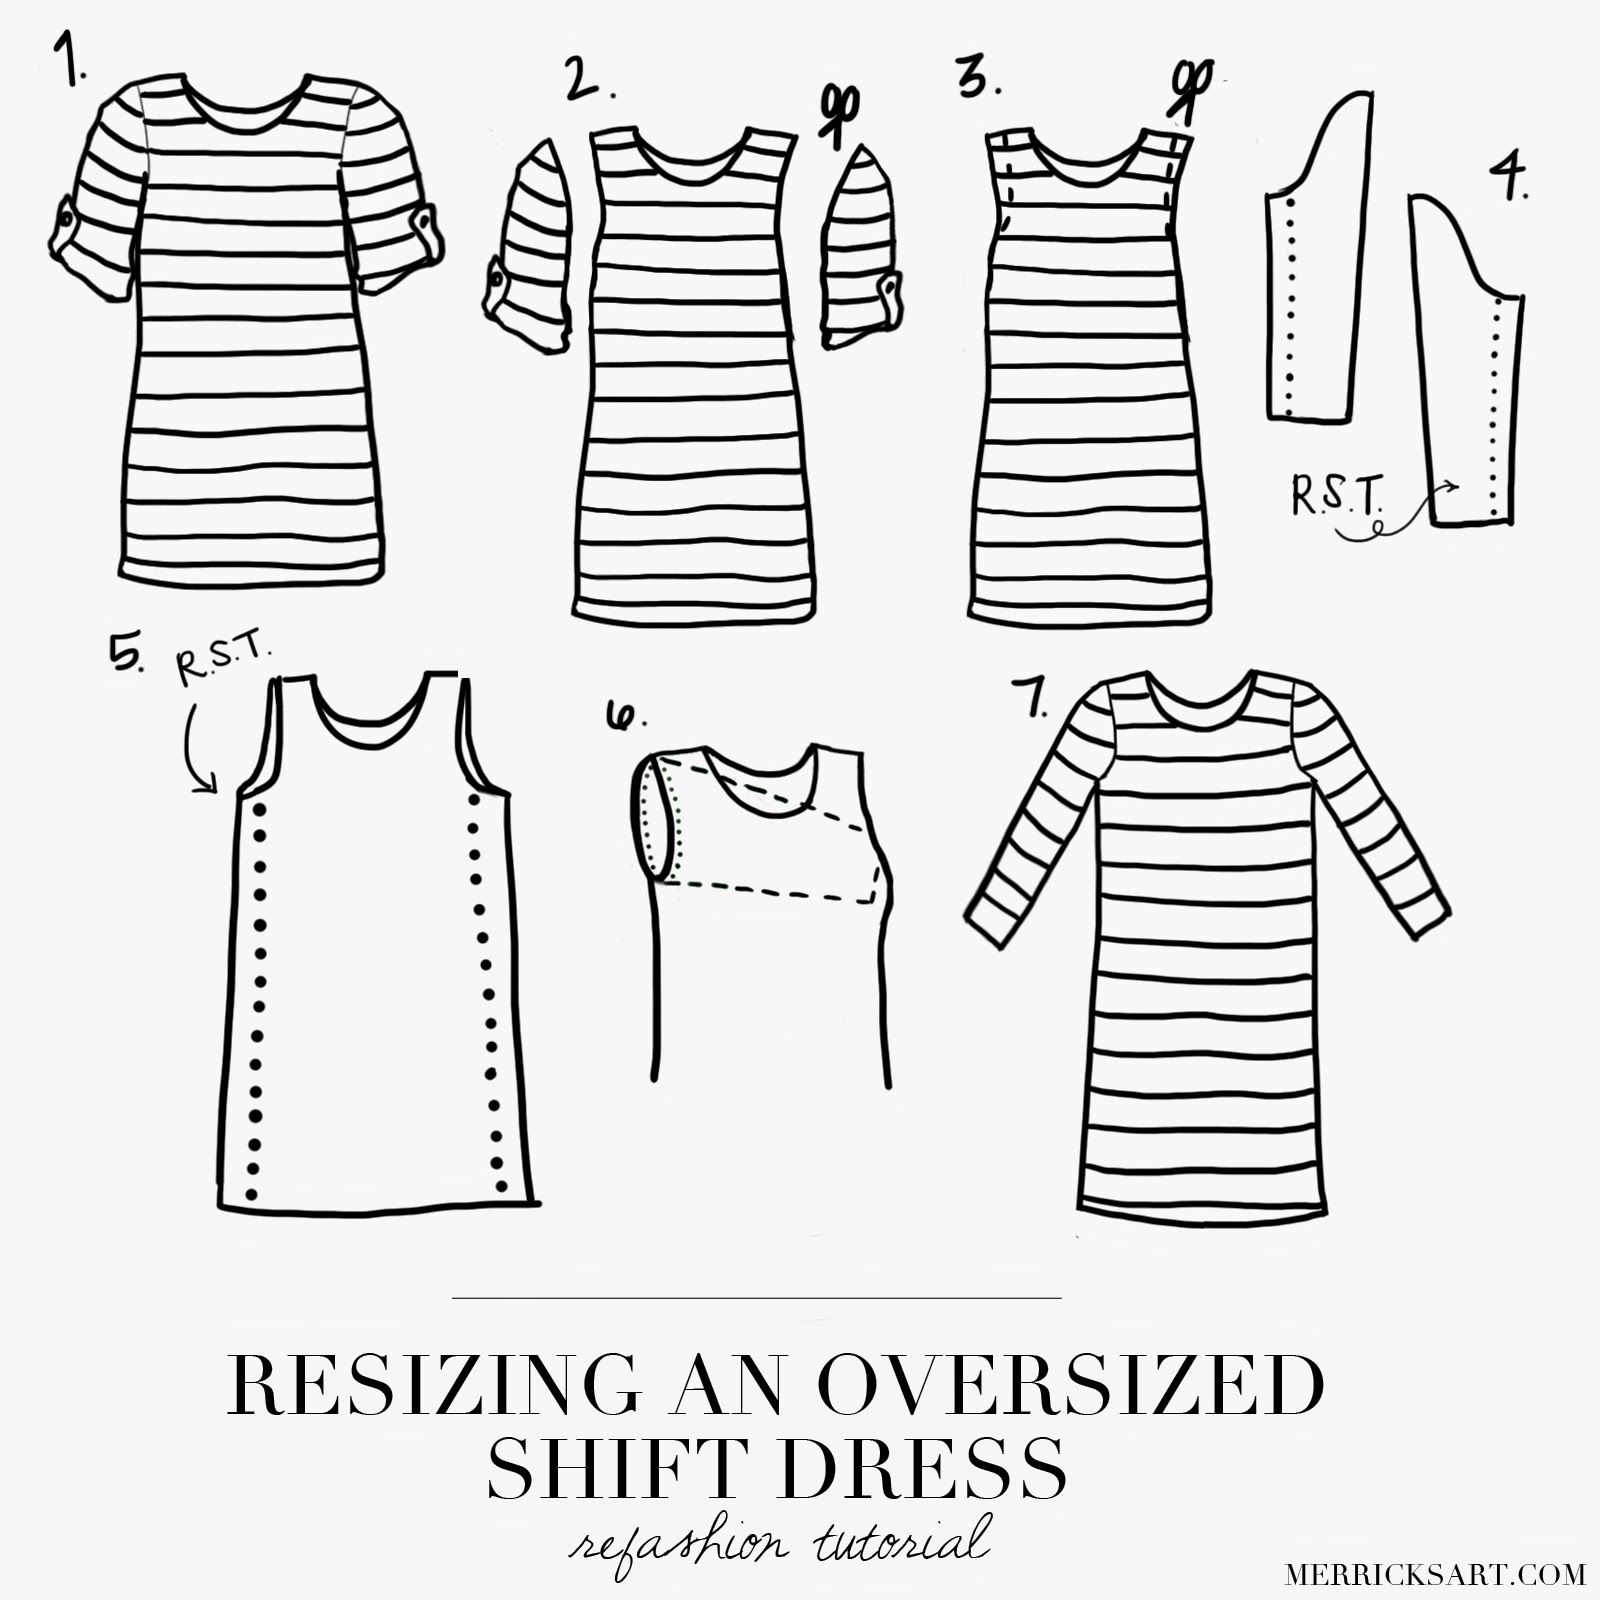 Merrickus art style sewing for the everyday girl resizing an